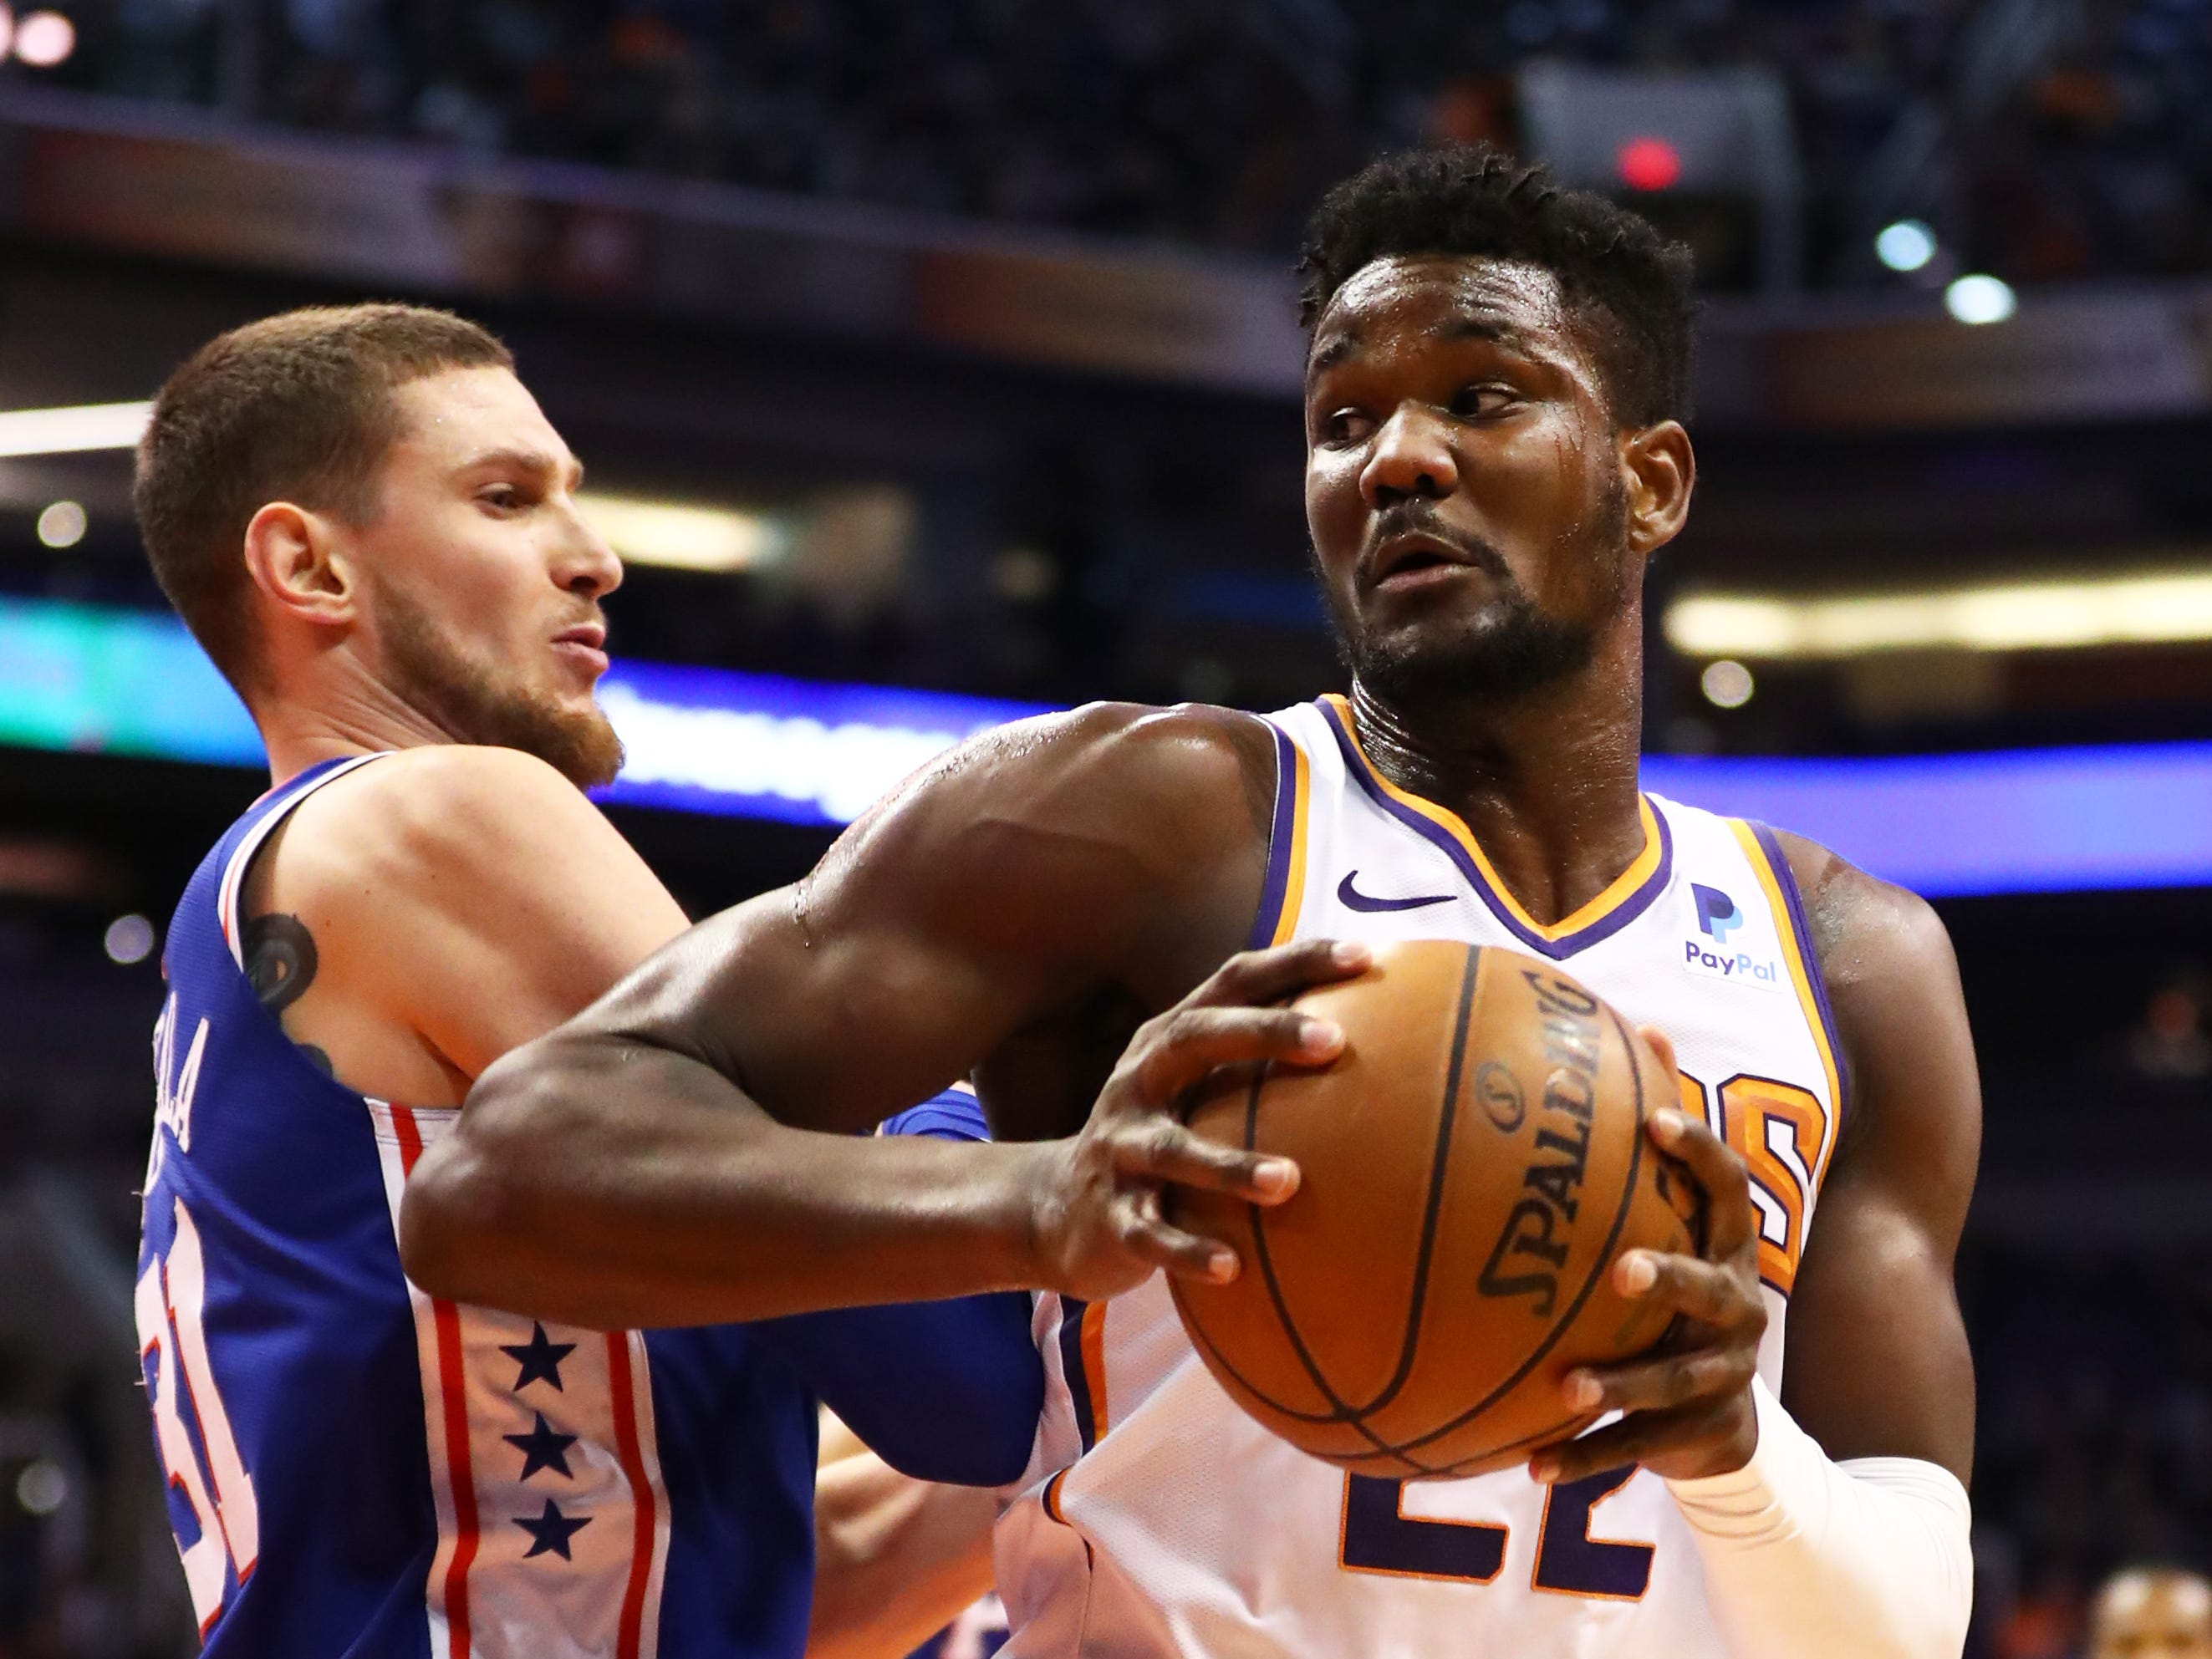 Jan 2, 2019; Phoenix, AZ, USA; Phoenix Suns center Deandre Ayton (right) against Philadelphia 76ers forward Mike Muscala in the first half at Talking Stick Resort Arena. Mandatory Credit: Mark J. Rebilas-USA TODAY Sports